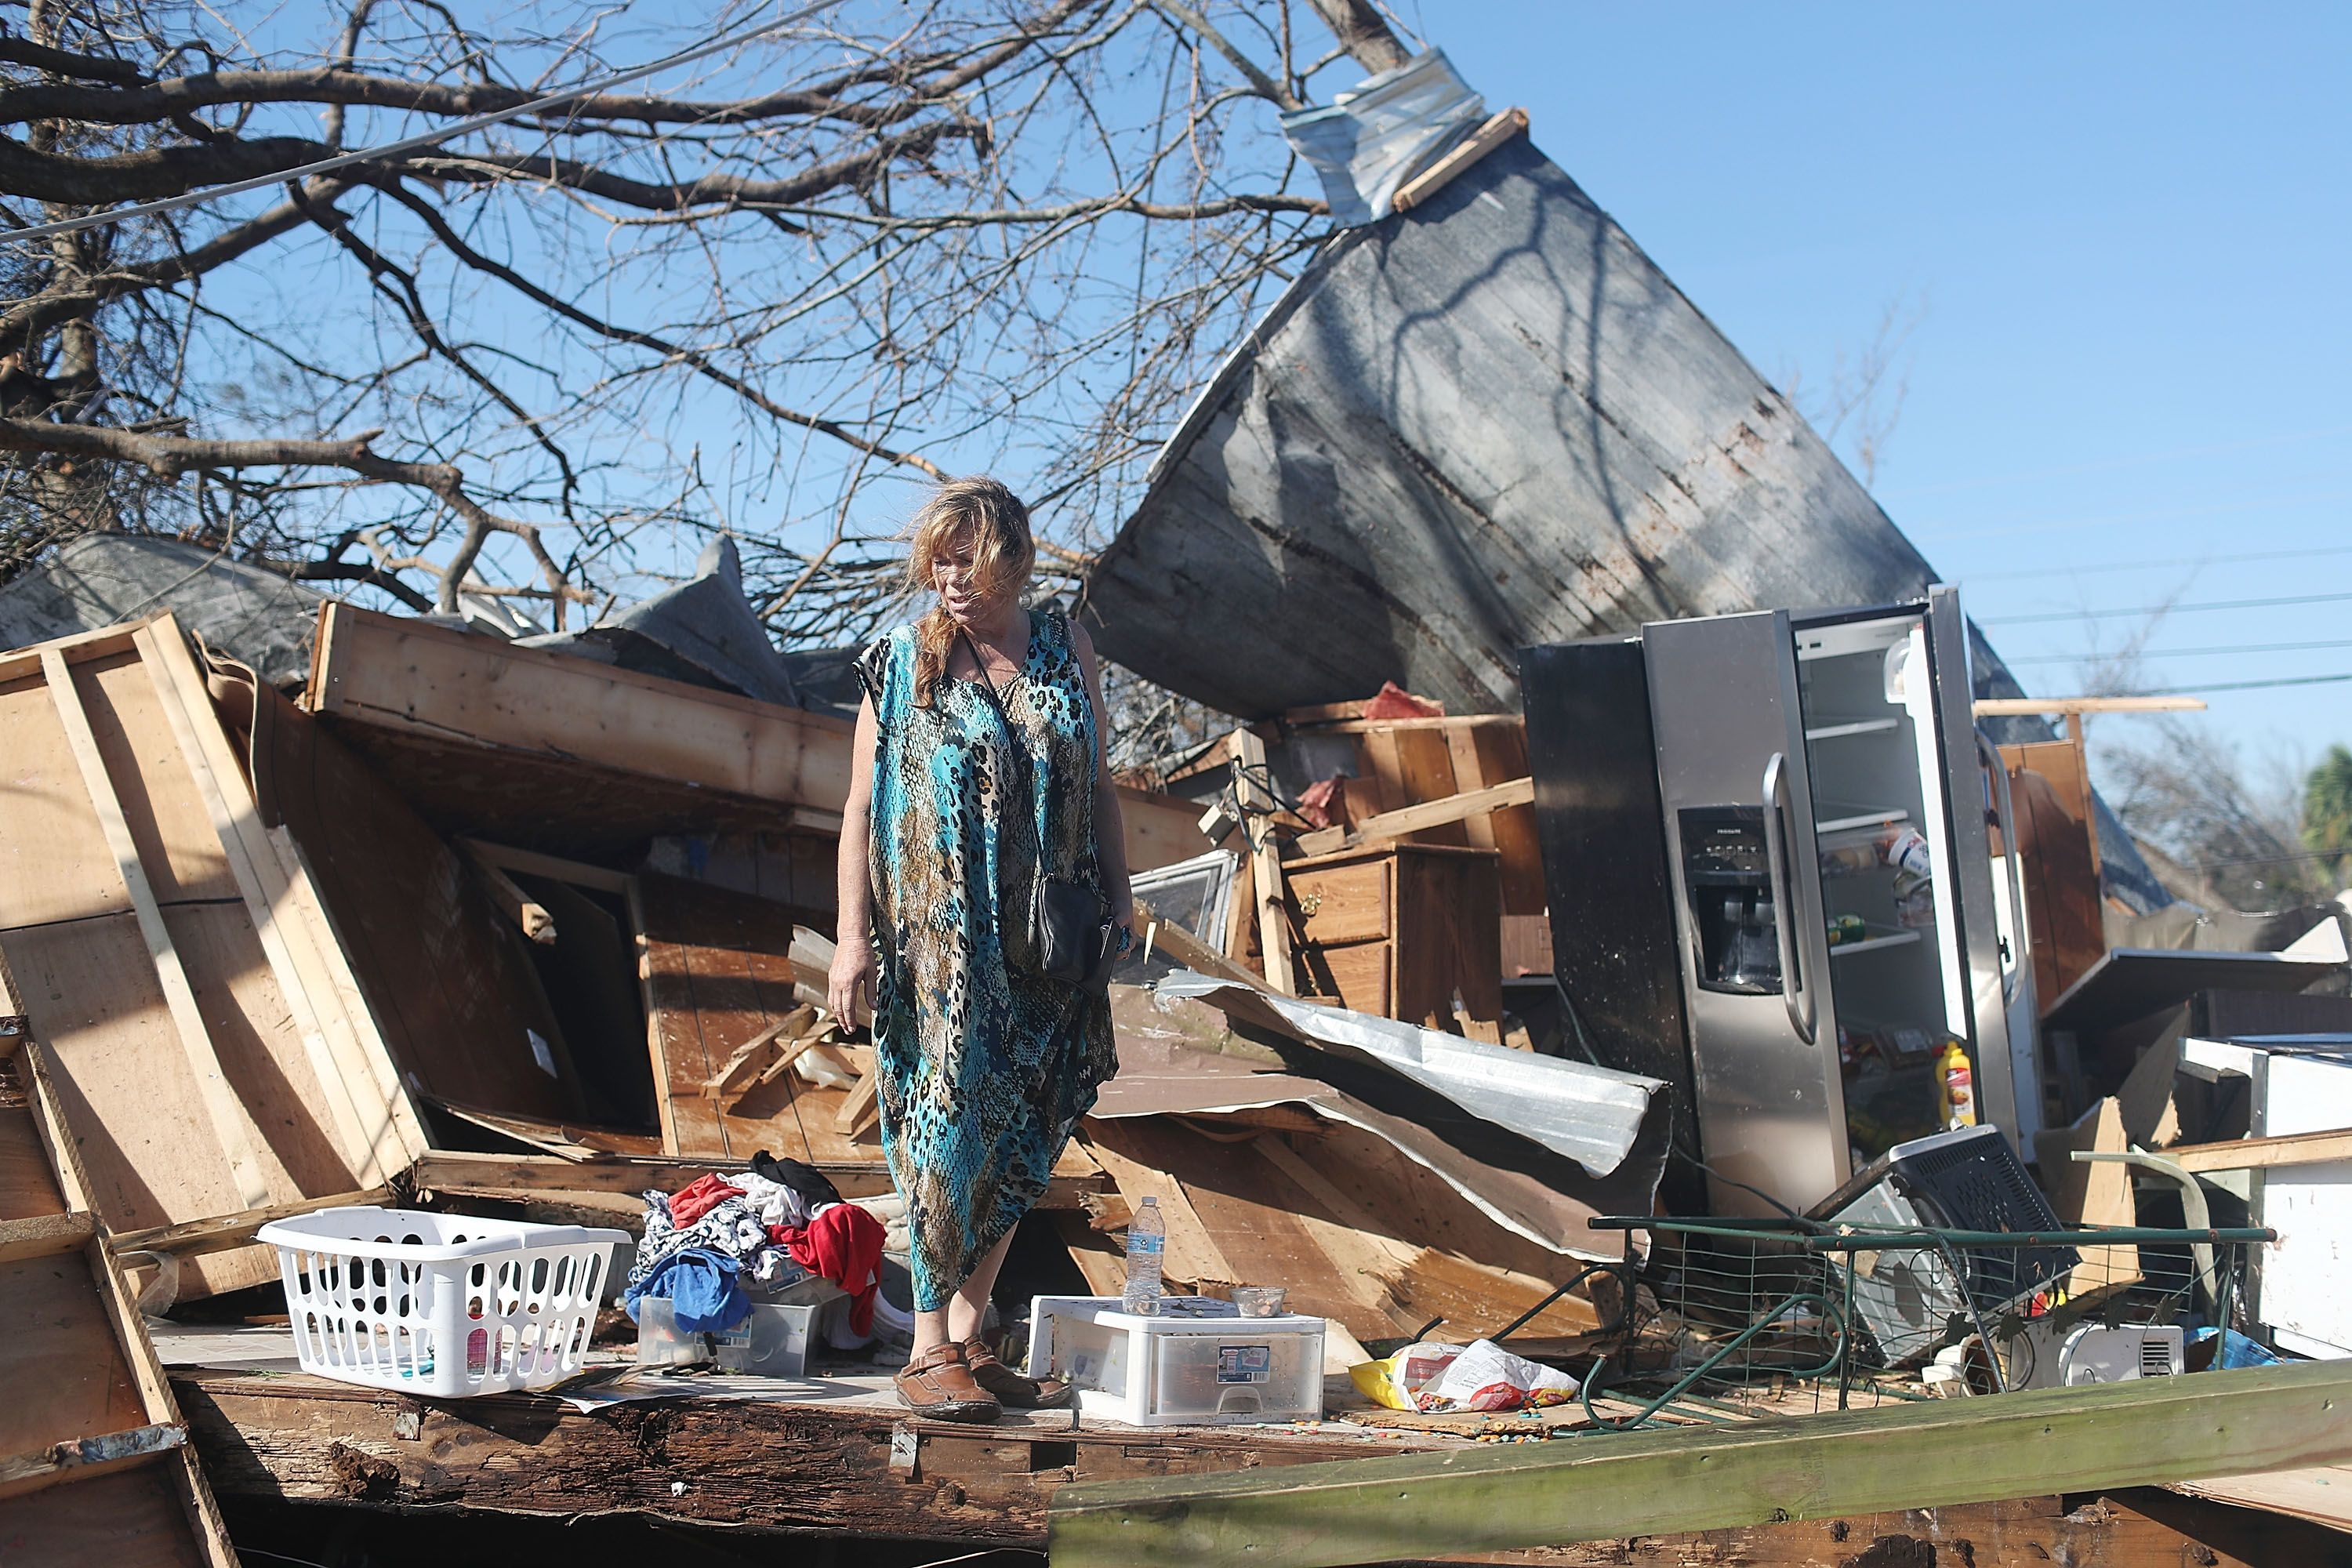 Kathy Coy stands among what is left of her home after Hurricane Michael destroyed it on October 11, 2018 in Panama City, Florida.